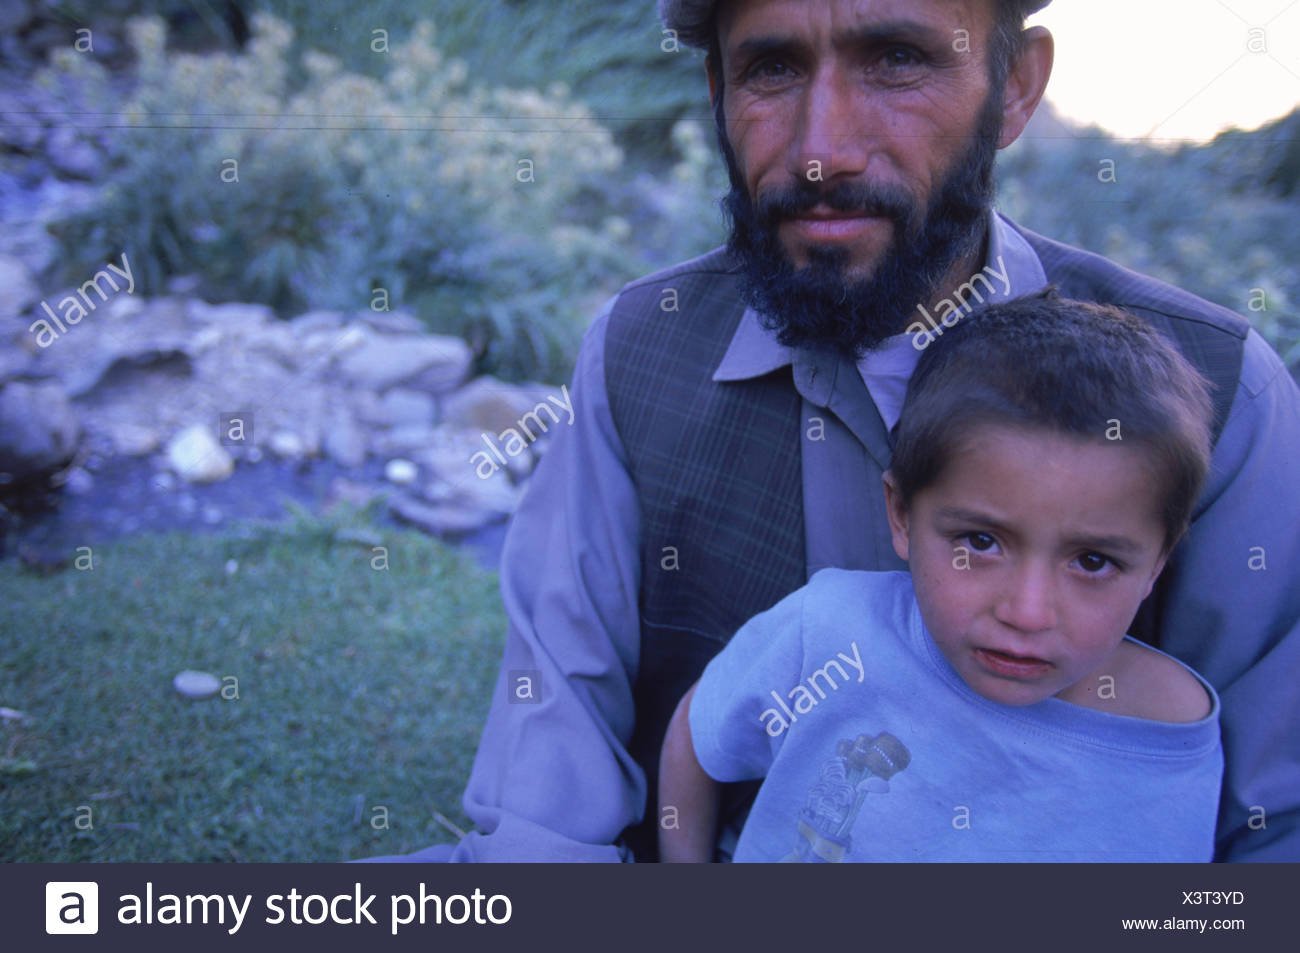 A Tajik man and his son relax in a field in the Panjshir Valley Hindu Kush mountains. - Stock Image